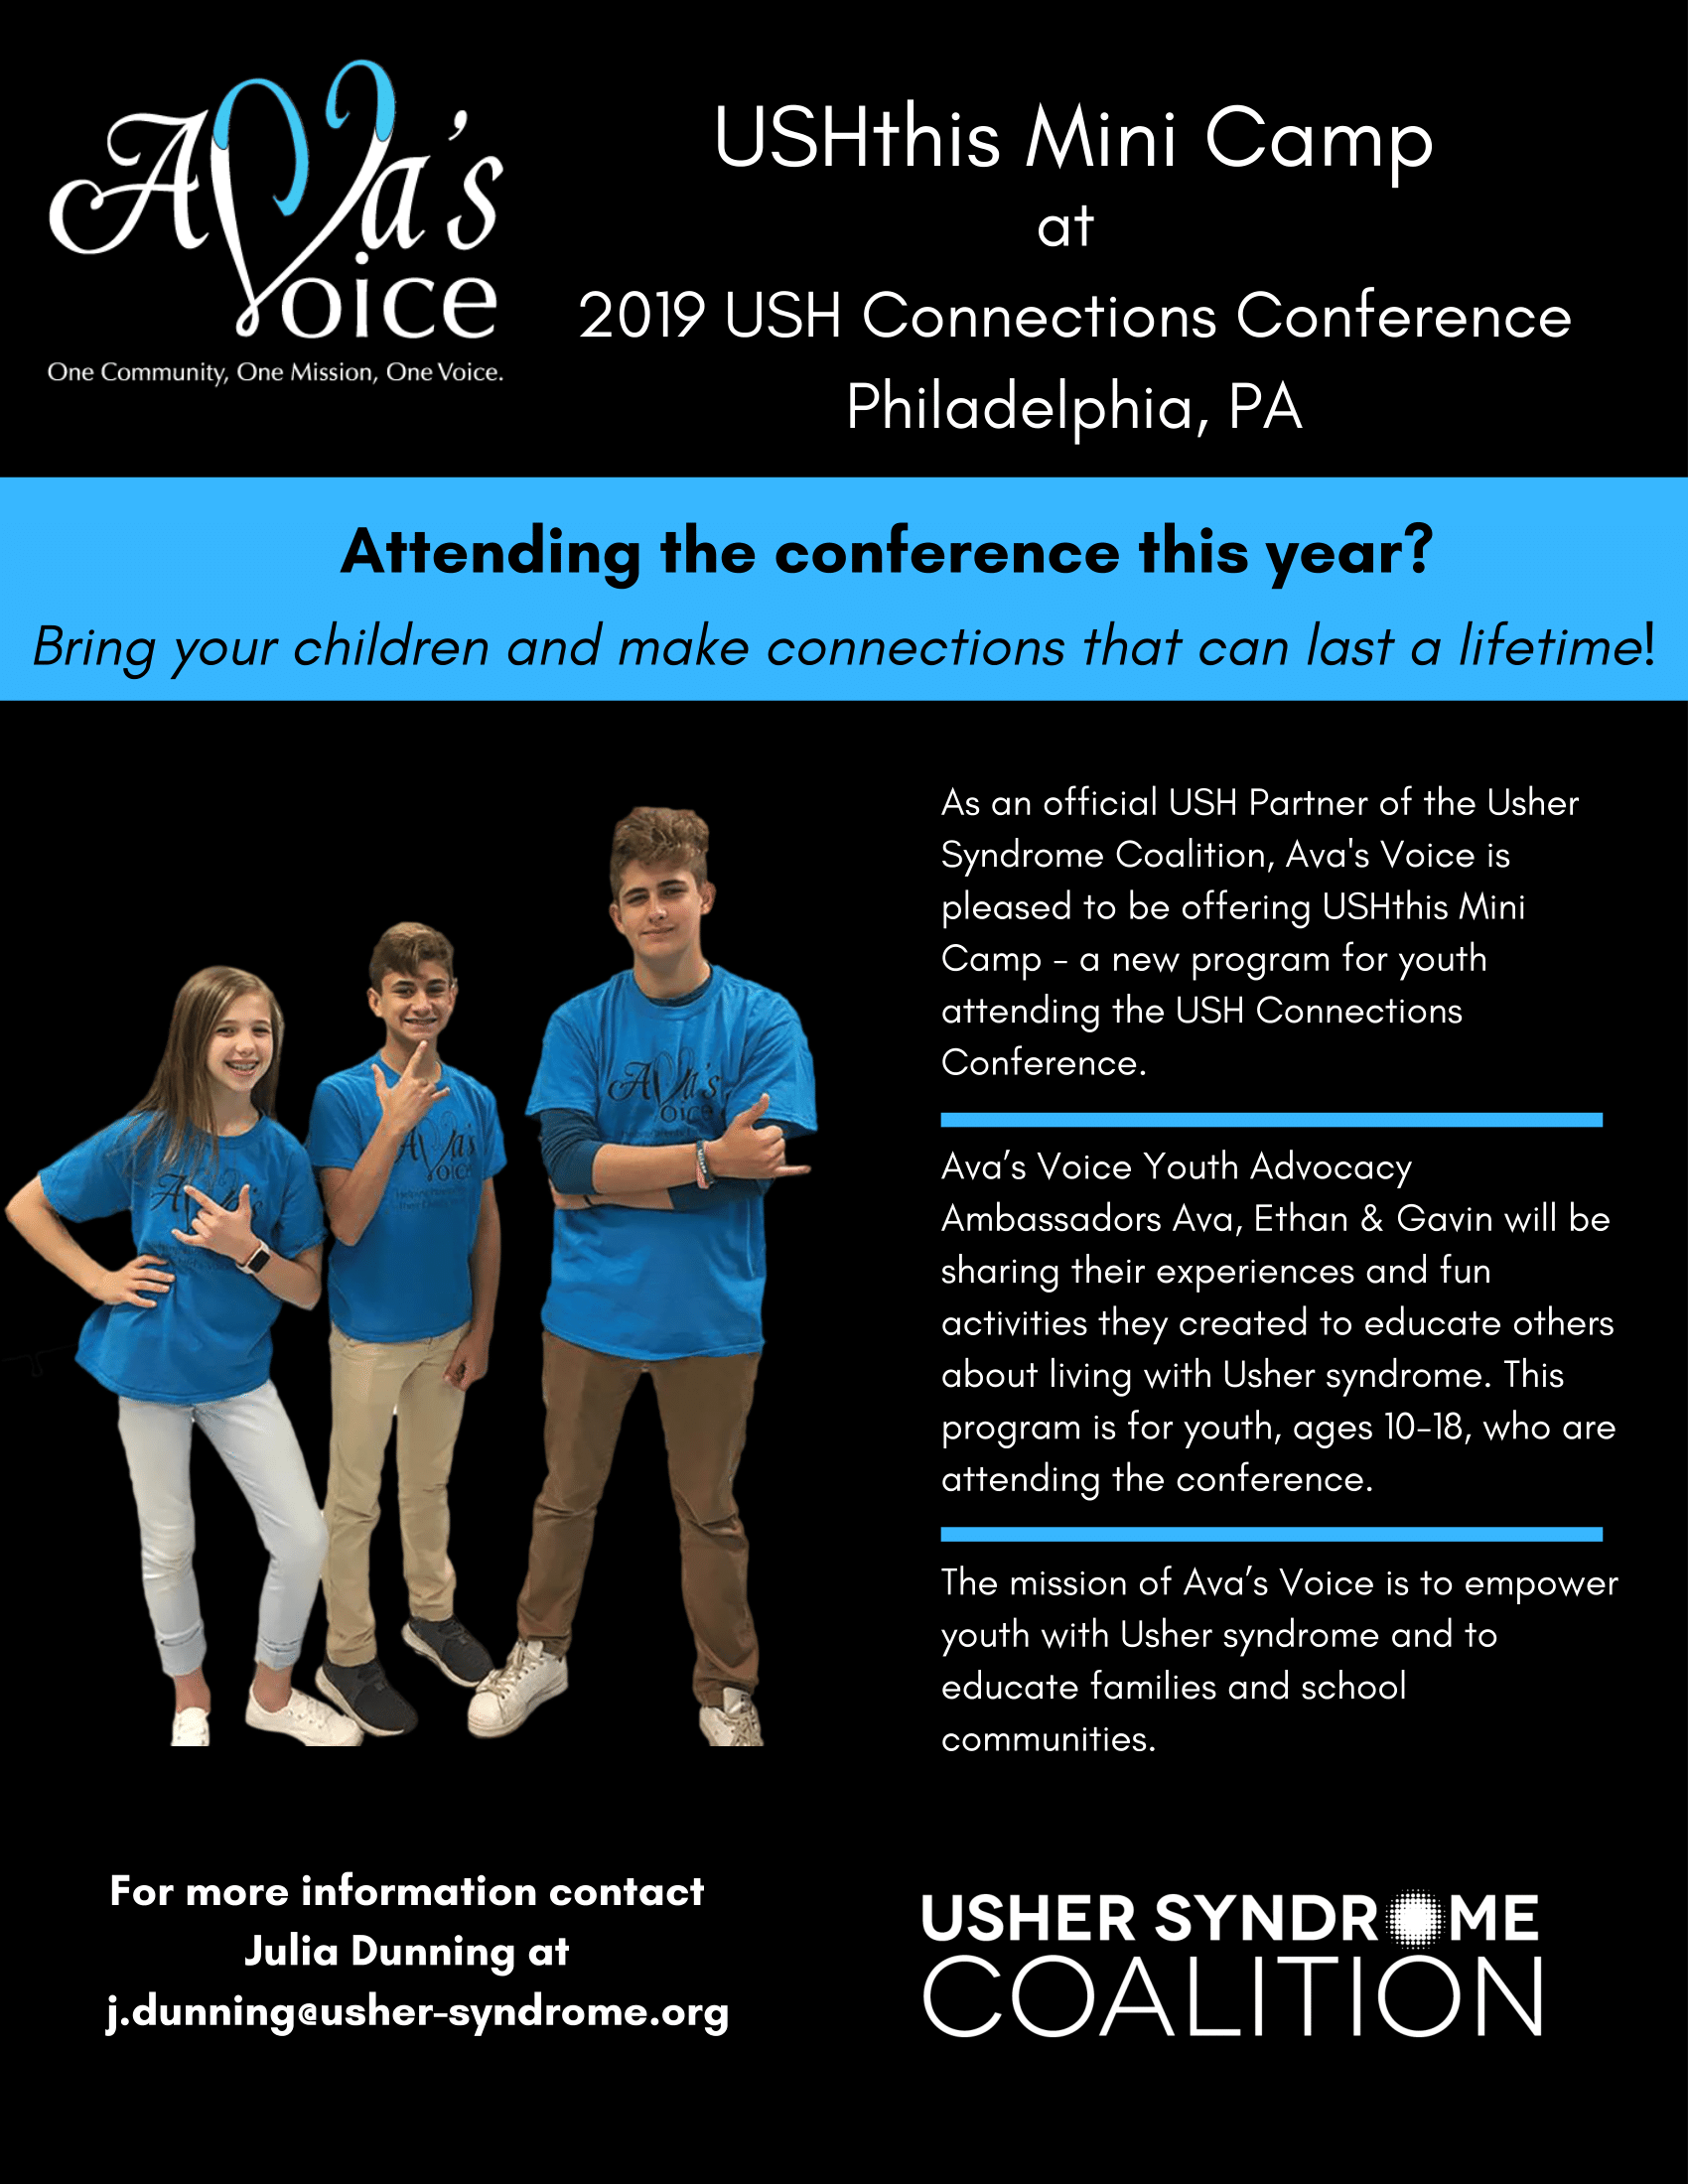 """Flyer with black background and white text with Ava's Voice logo in top left corner with subtext """"One Community, One Mission, One Voice"""" and the Usher Syndrome Coalition logo in white bottom right corner. Flyer text: USHthis Mini Camp at 2019 USH Connect"""